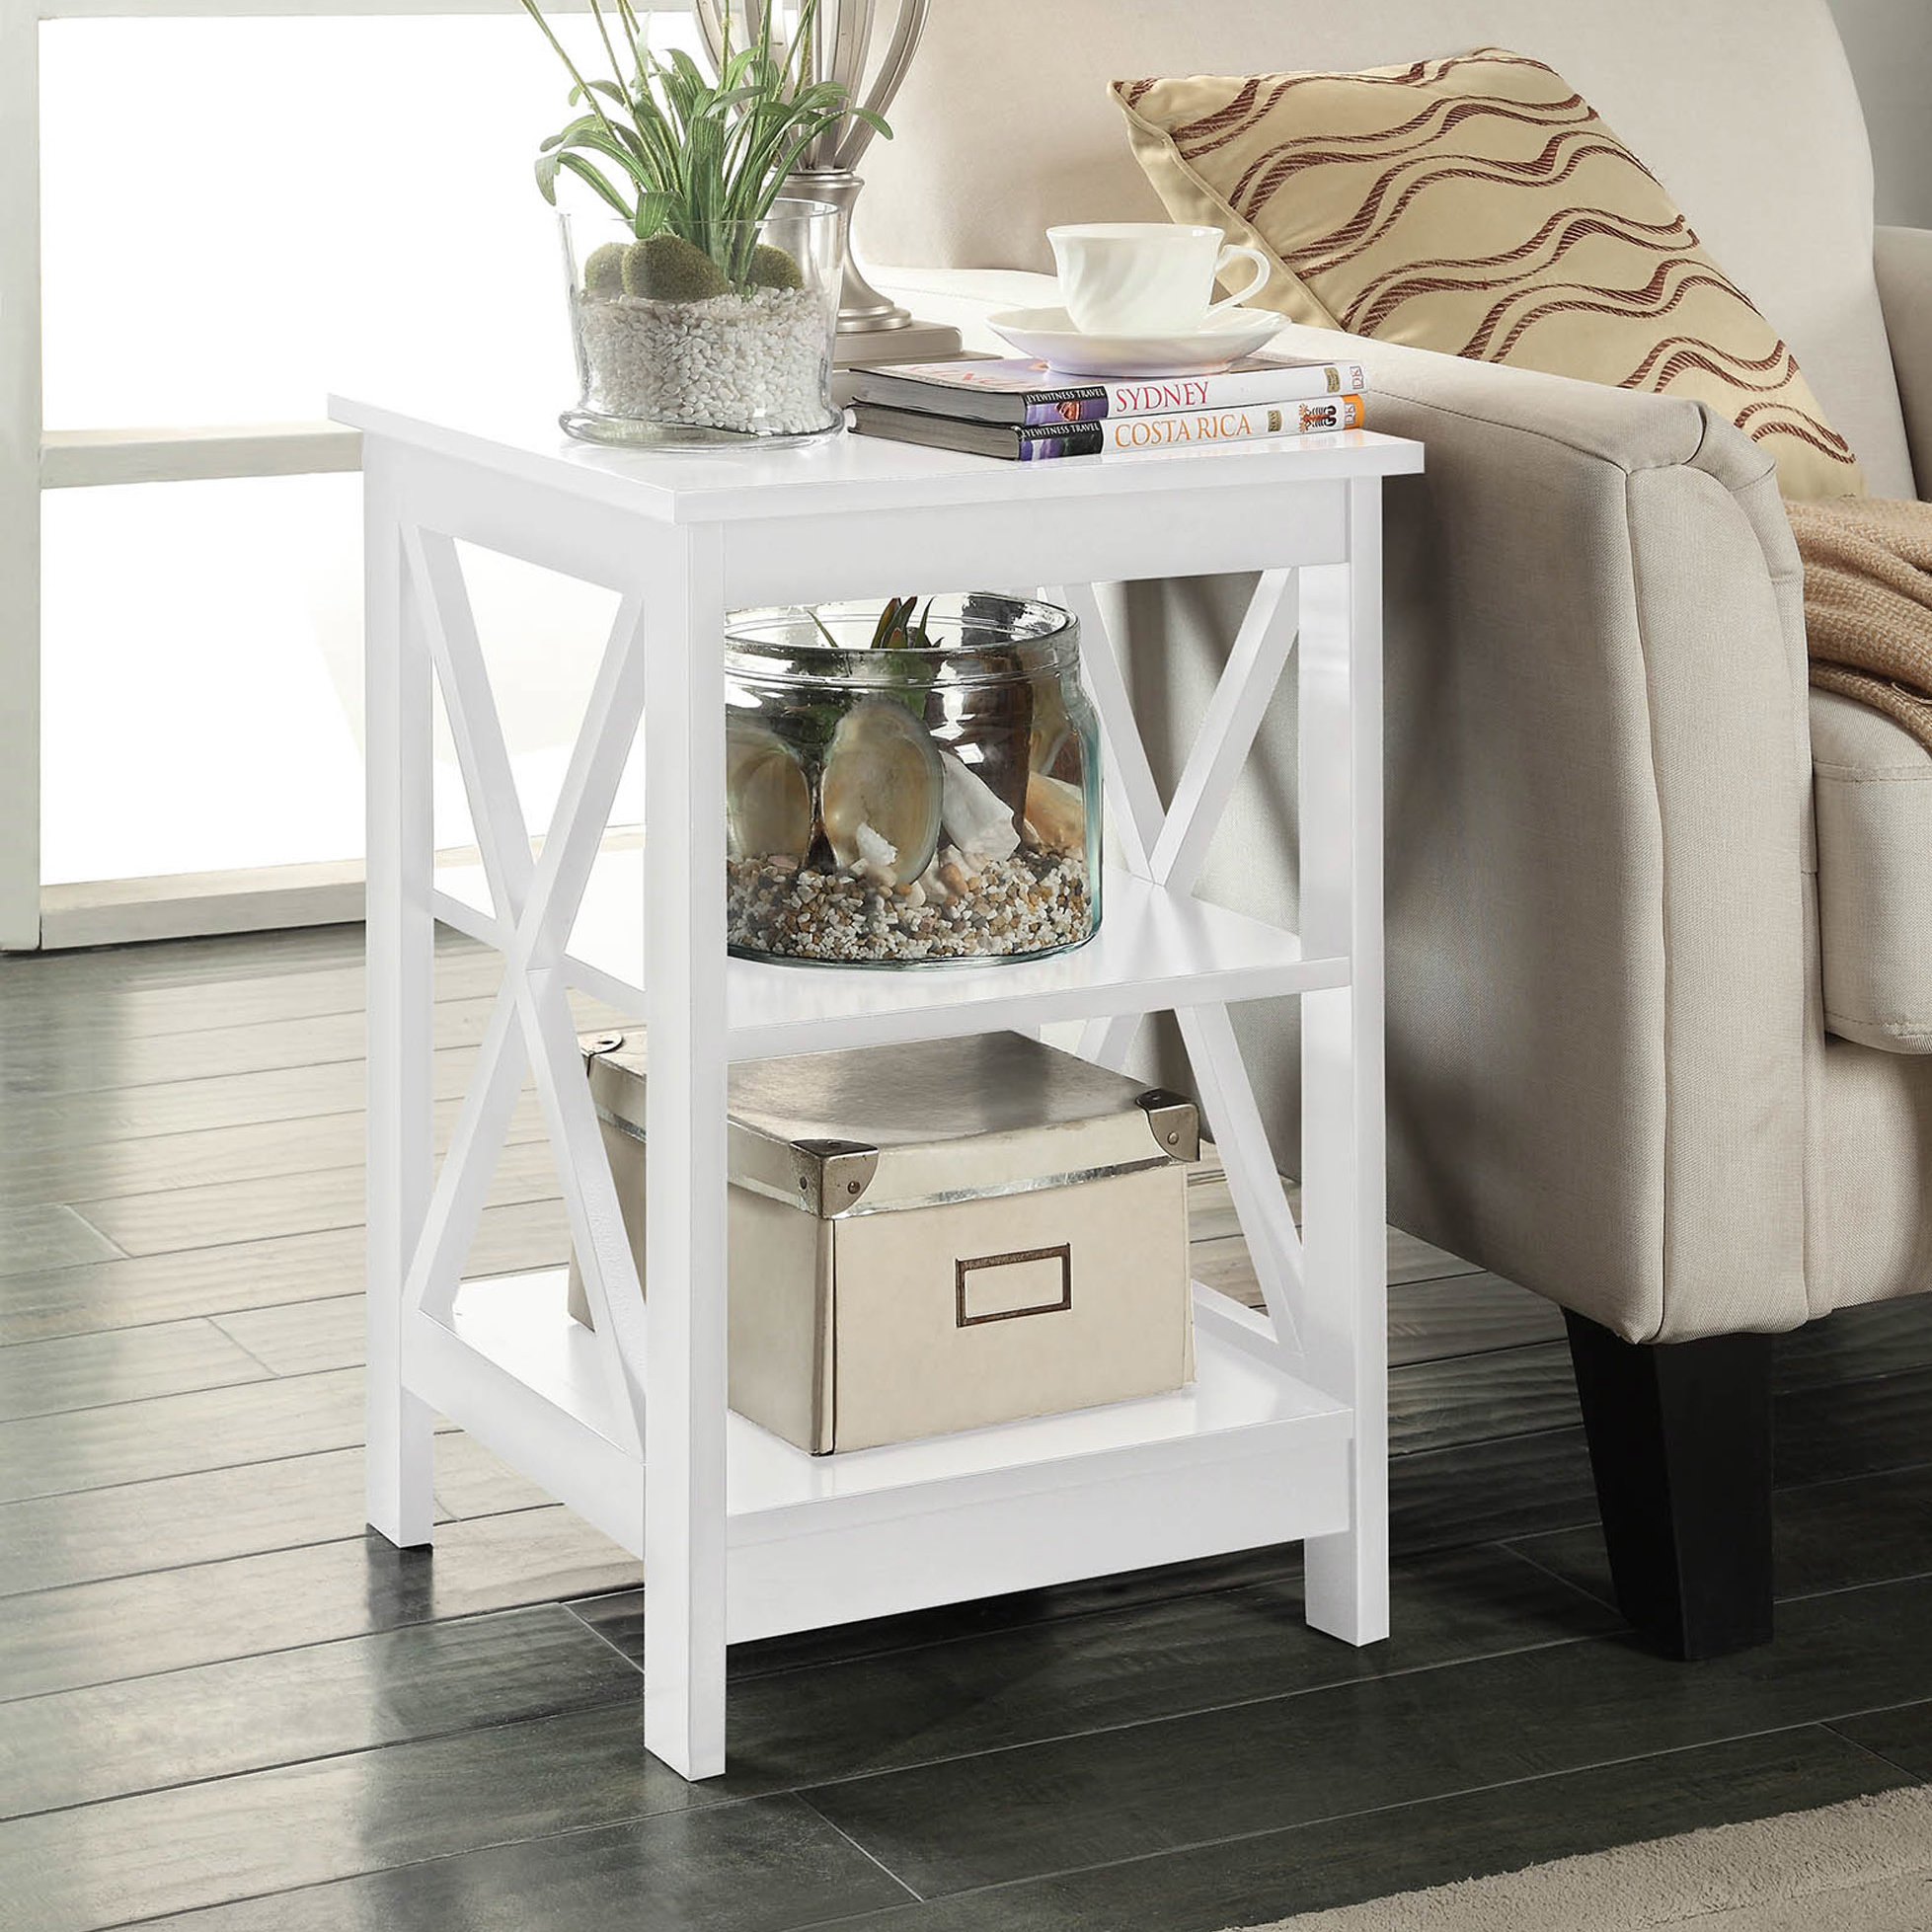 small white accent table stoneford end ifrane quickview pottery barn christmas stool gold and wood coffee tennis carpet room divider strip dining set nautical light fixtures